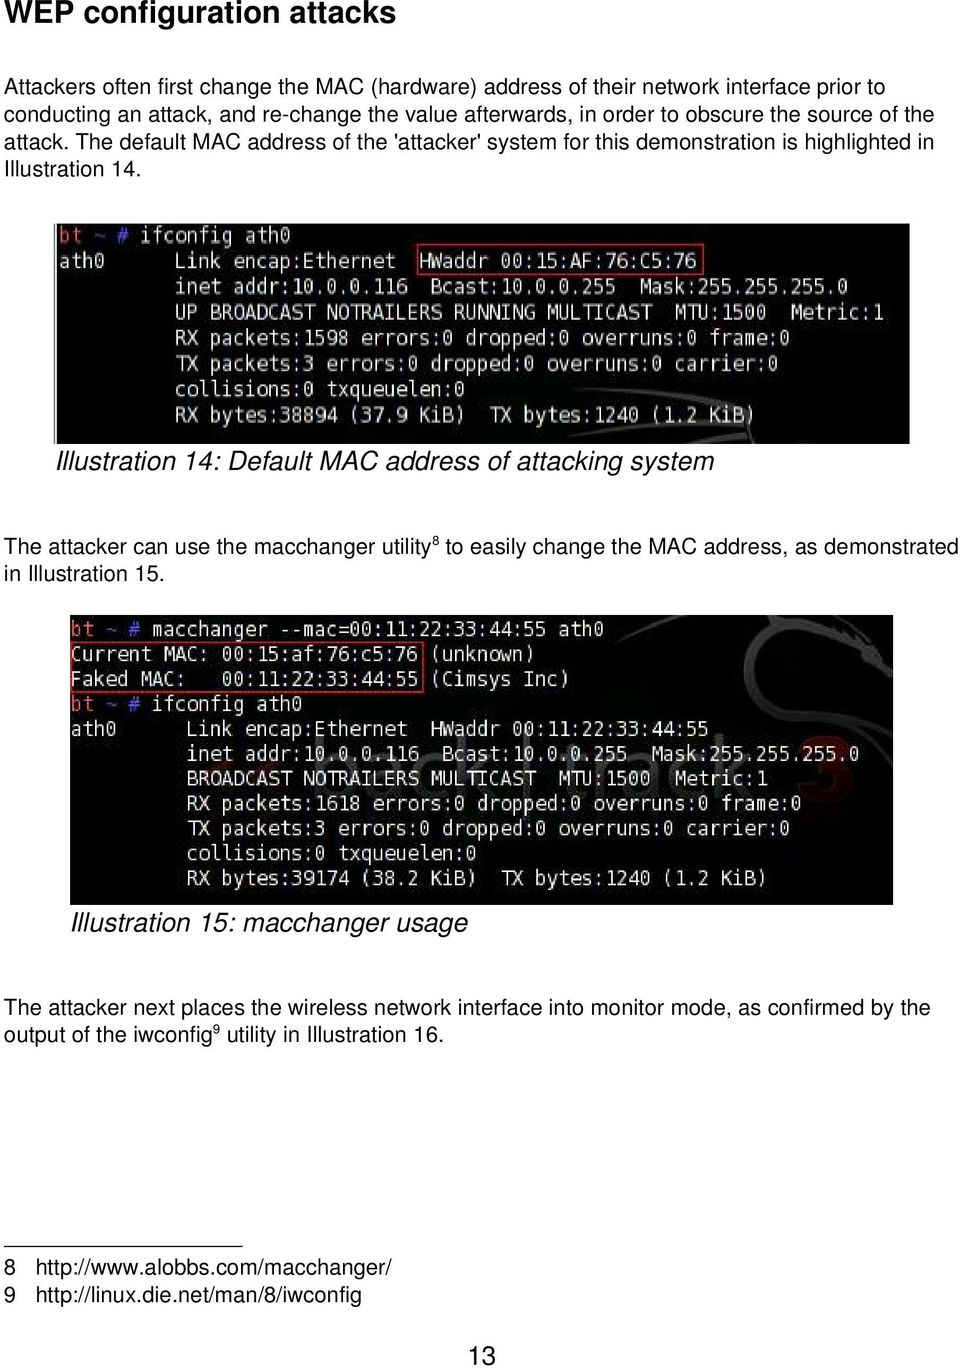 Illustration 14: Default MAC address of attacking system The attacker can use the macchanger utility8 to easily change the MAC address, as demonstrated in Illustration 15.